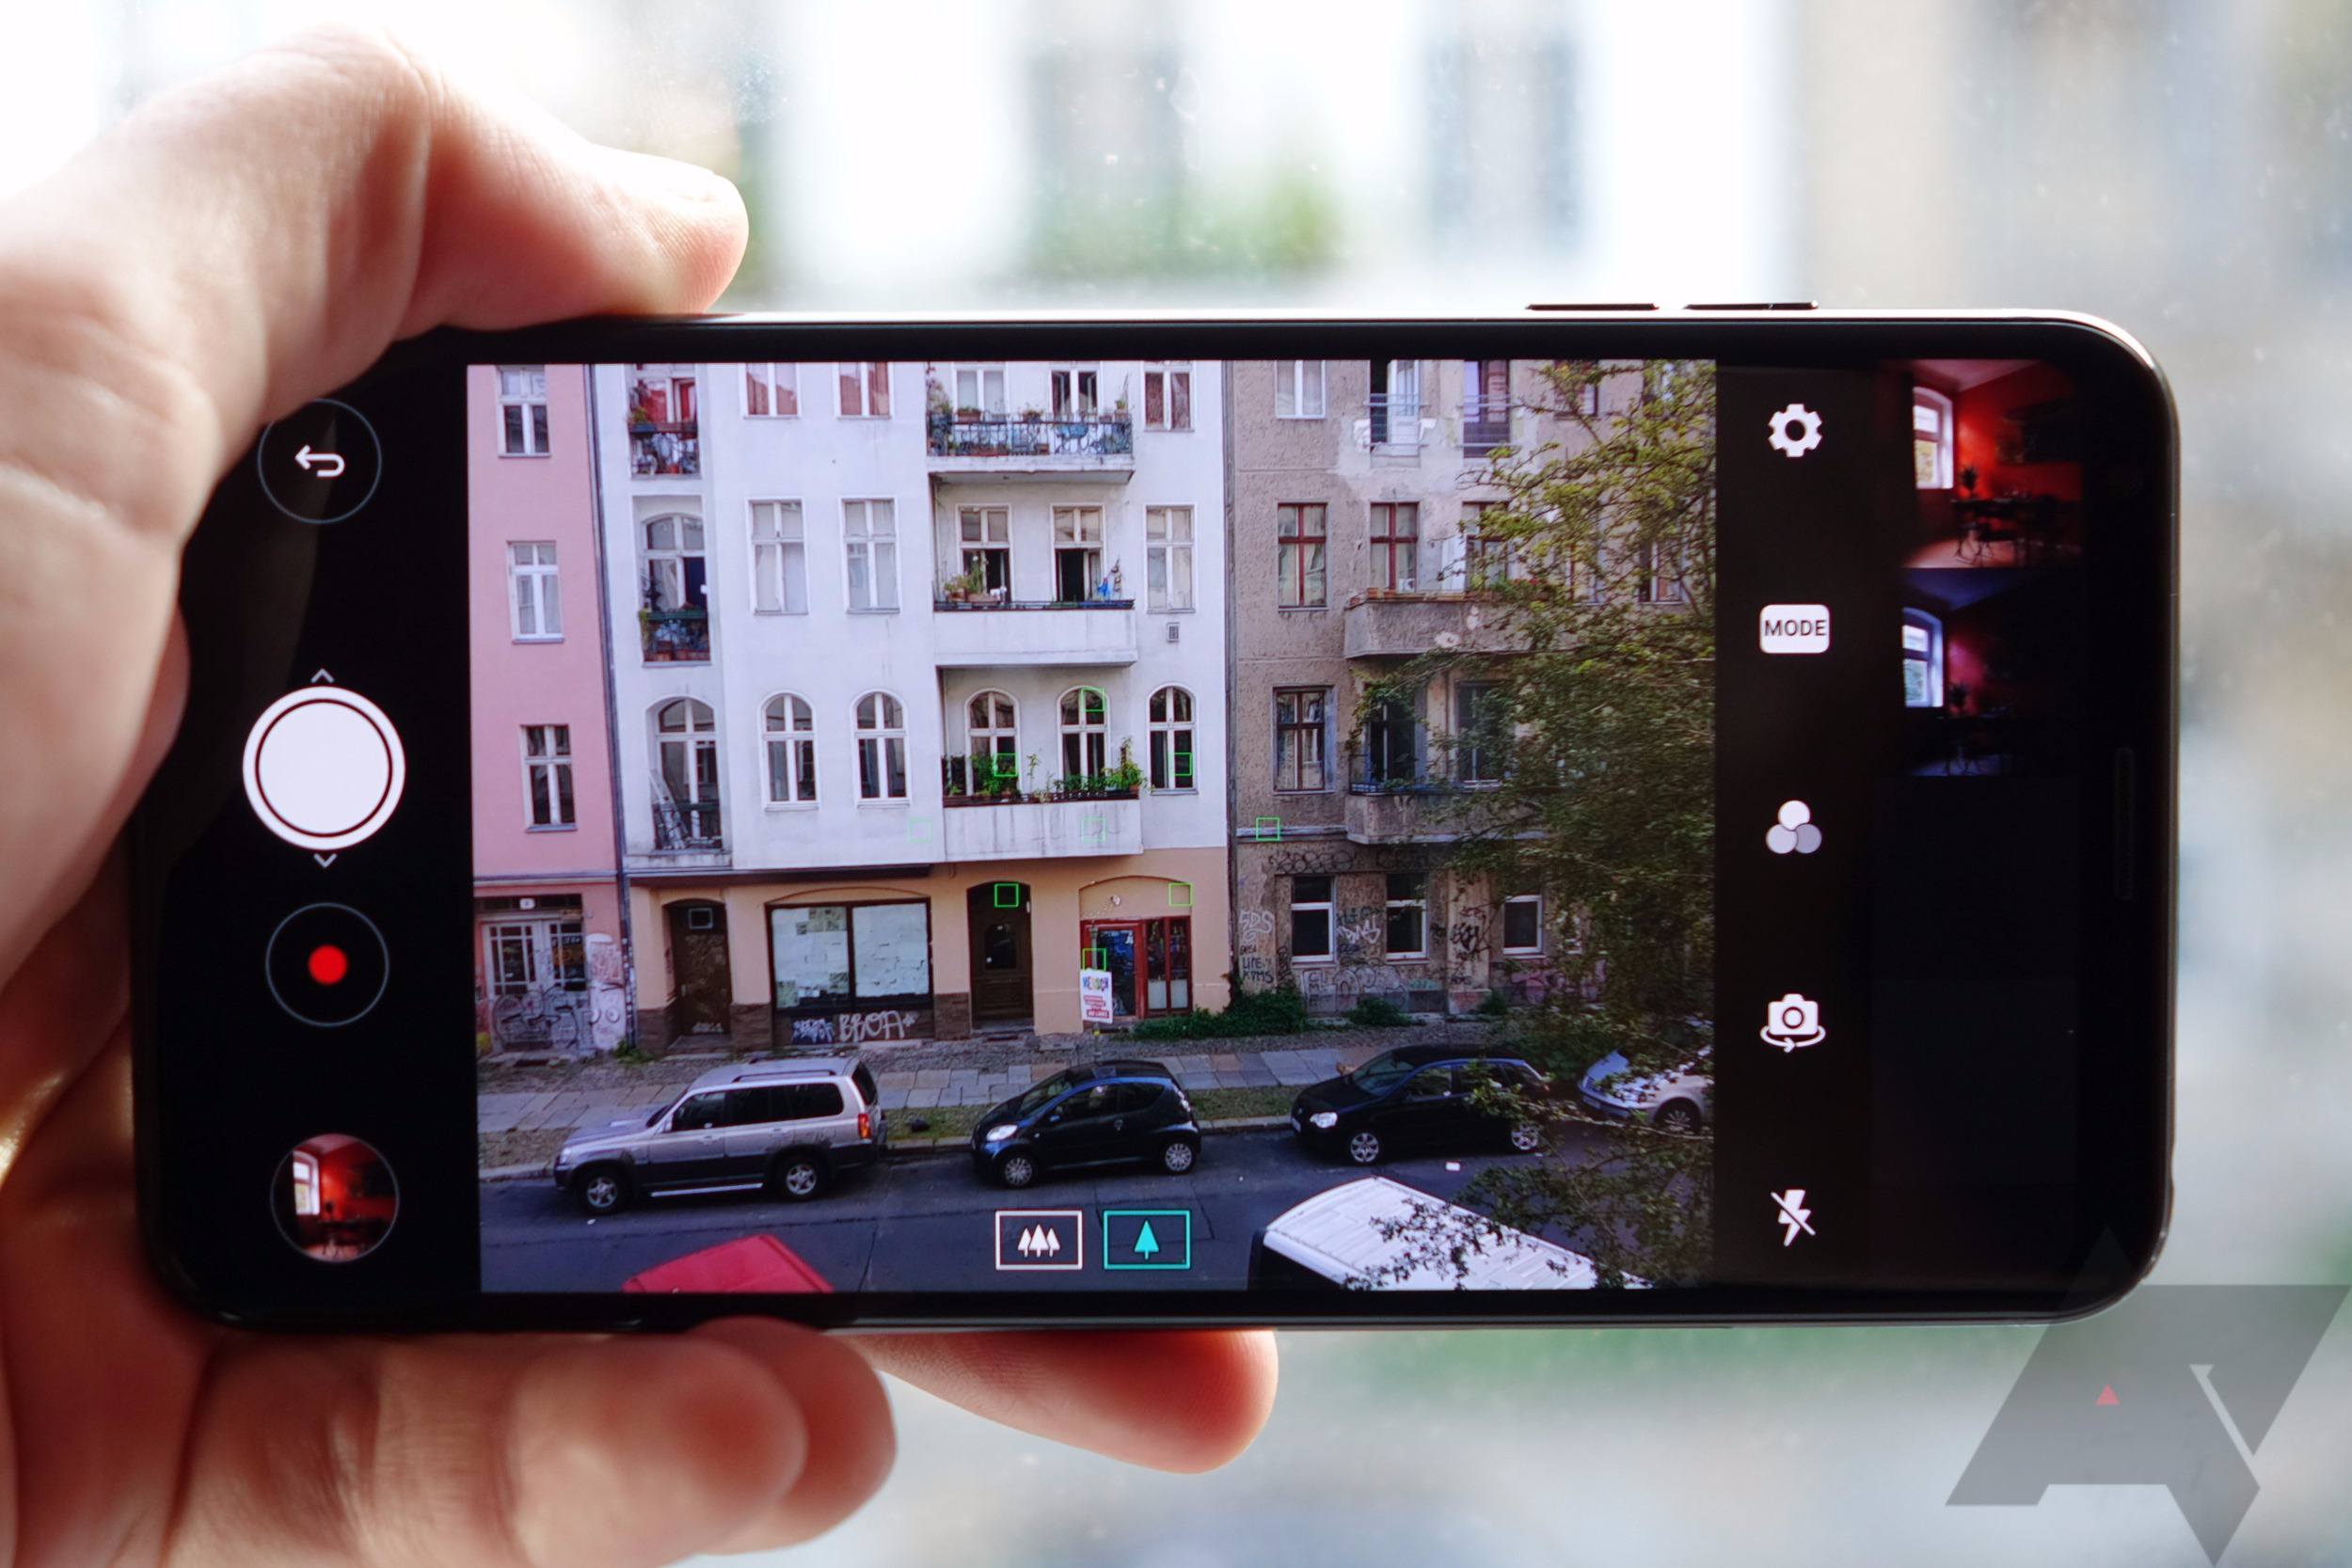 LG V30 camera app gets ported to G6, adds nearly all of the V30's